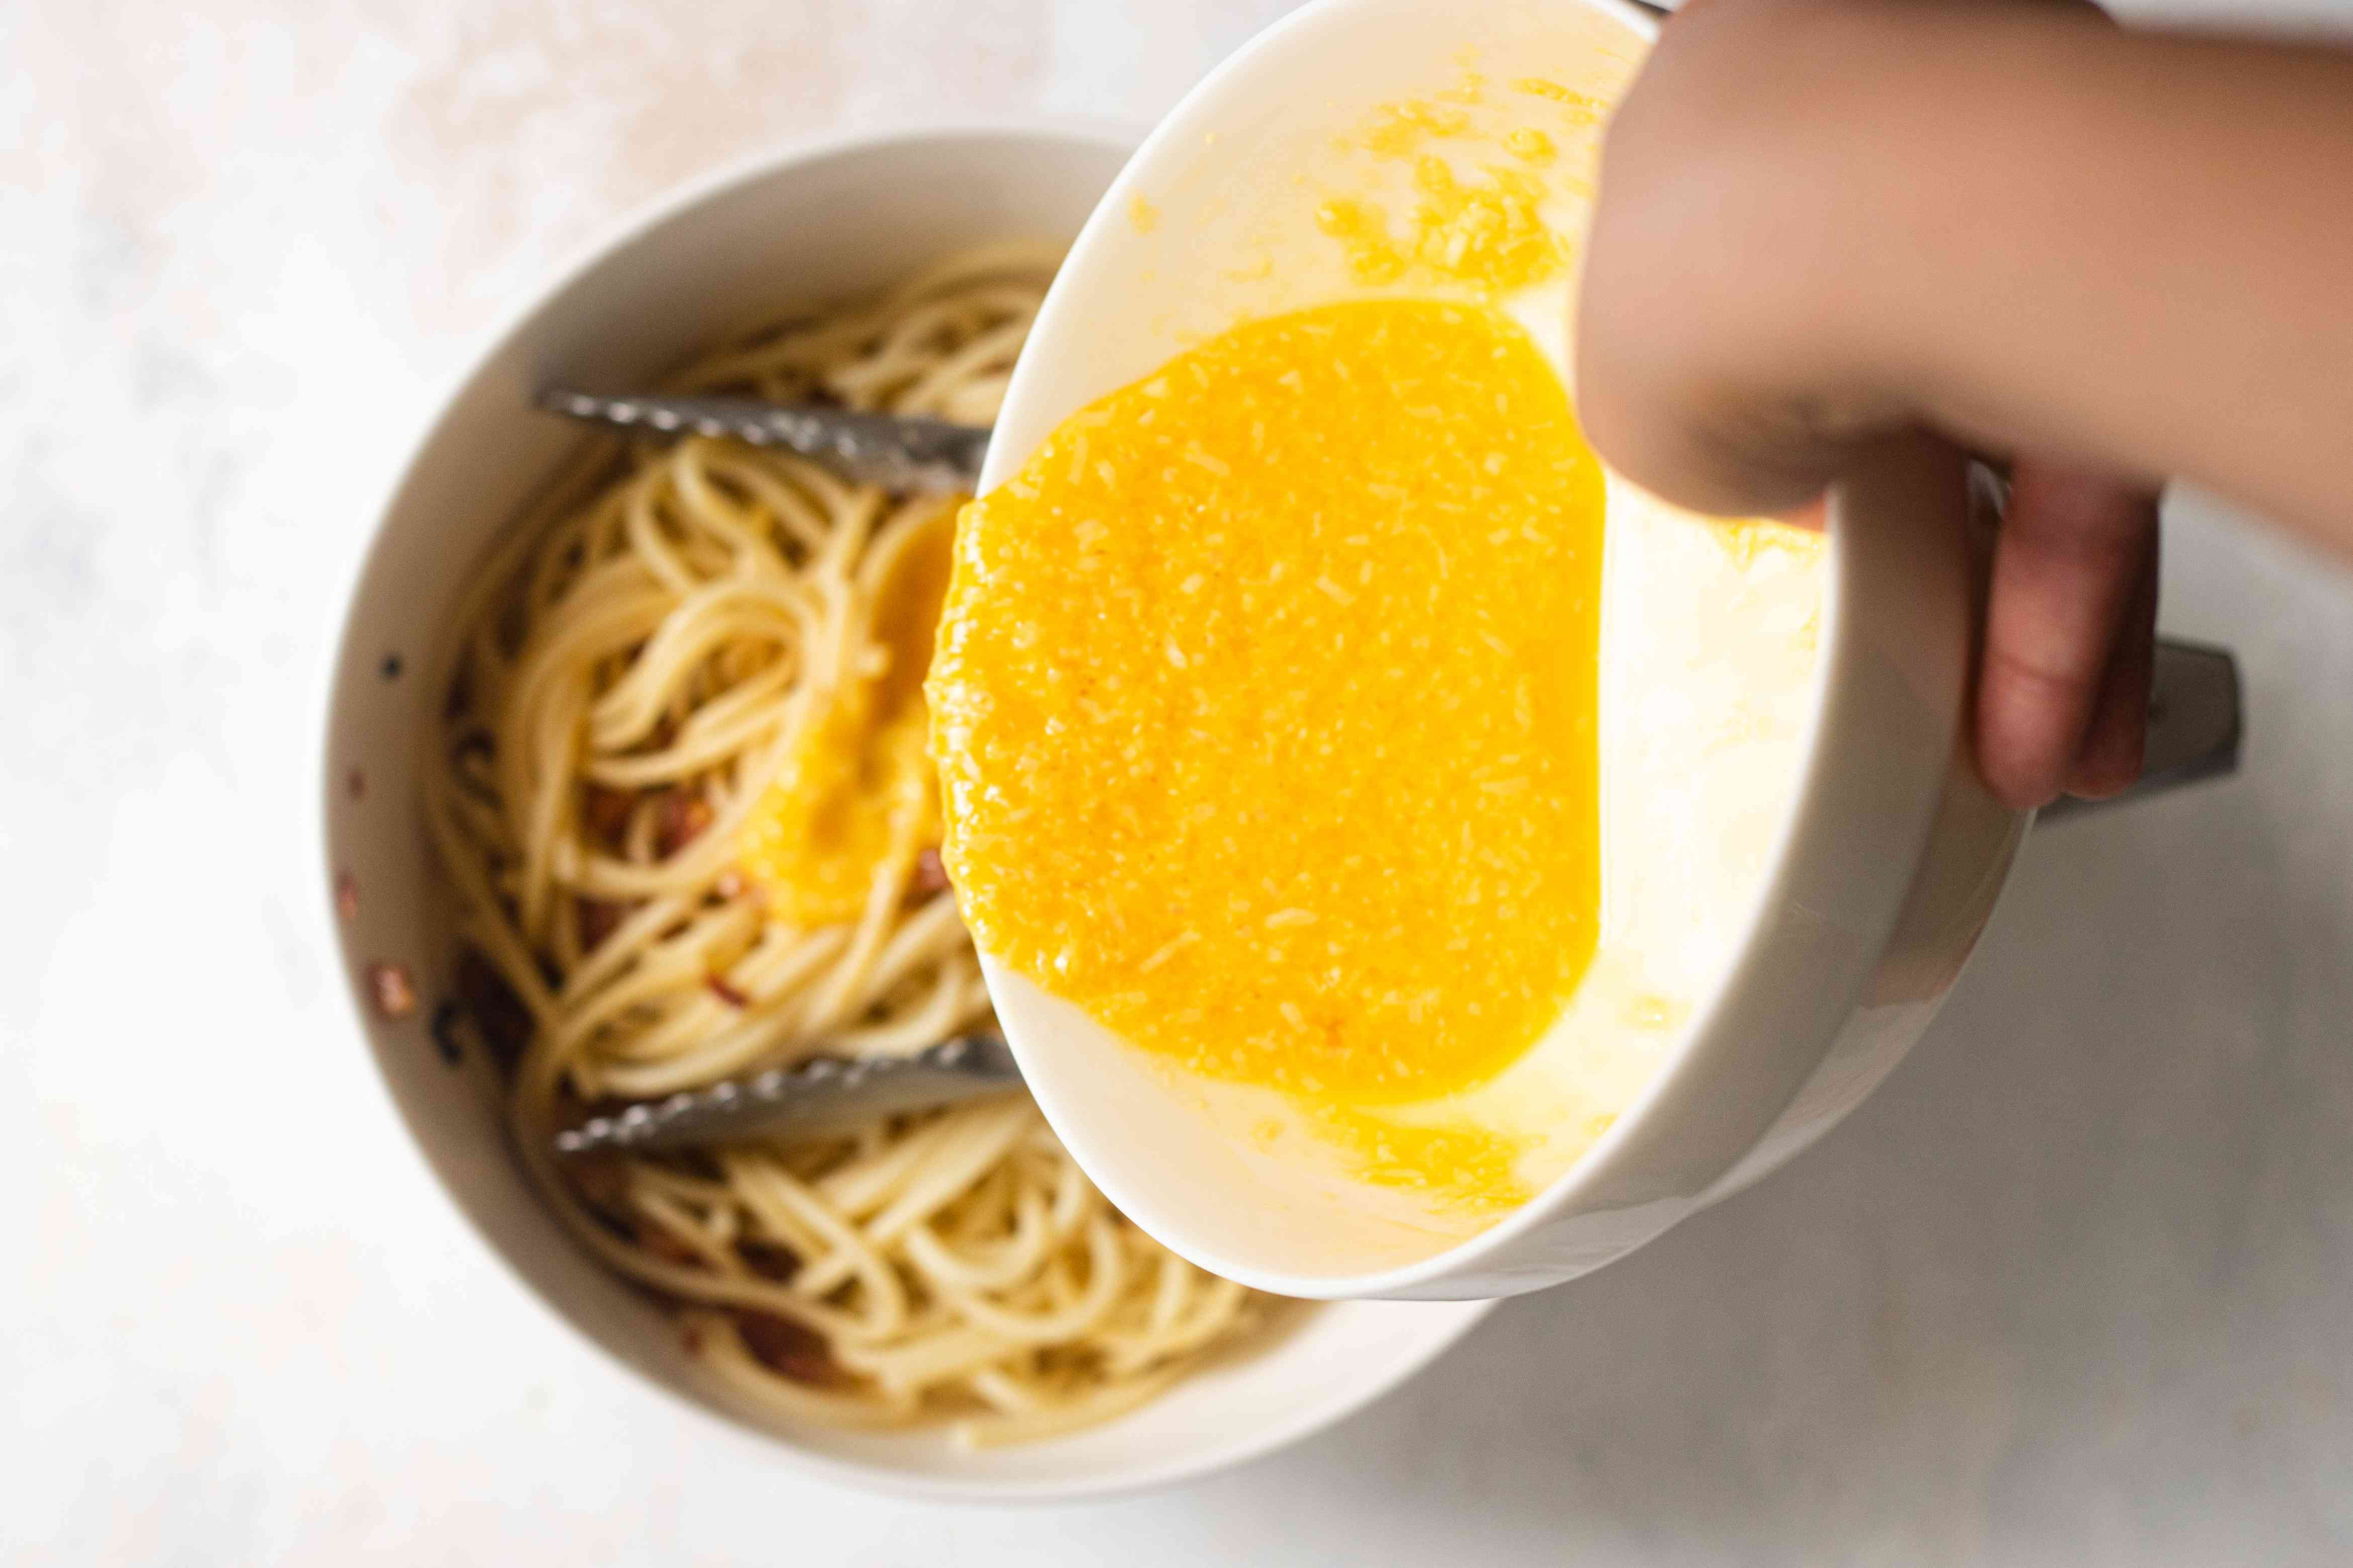 Adding whisked eggs to a bowl of noodles for Spaghetti Carbonara.